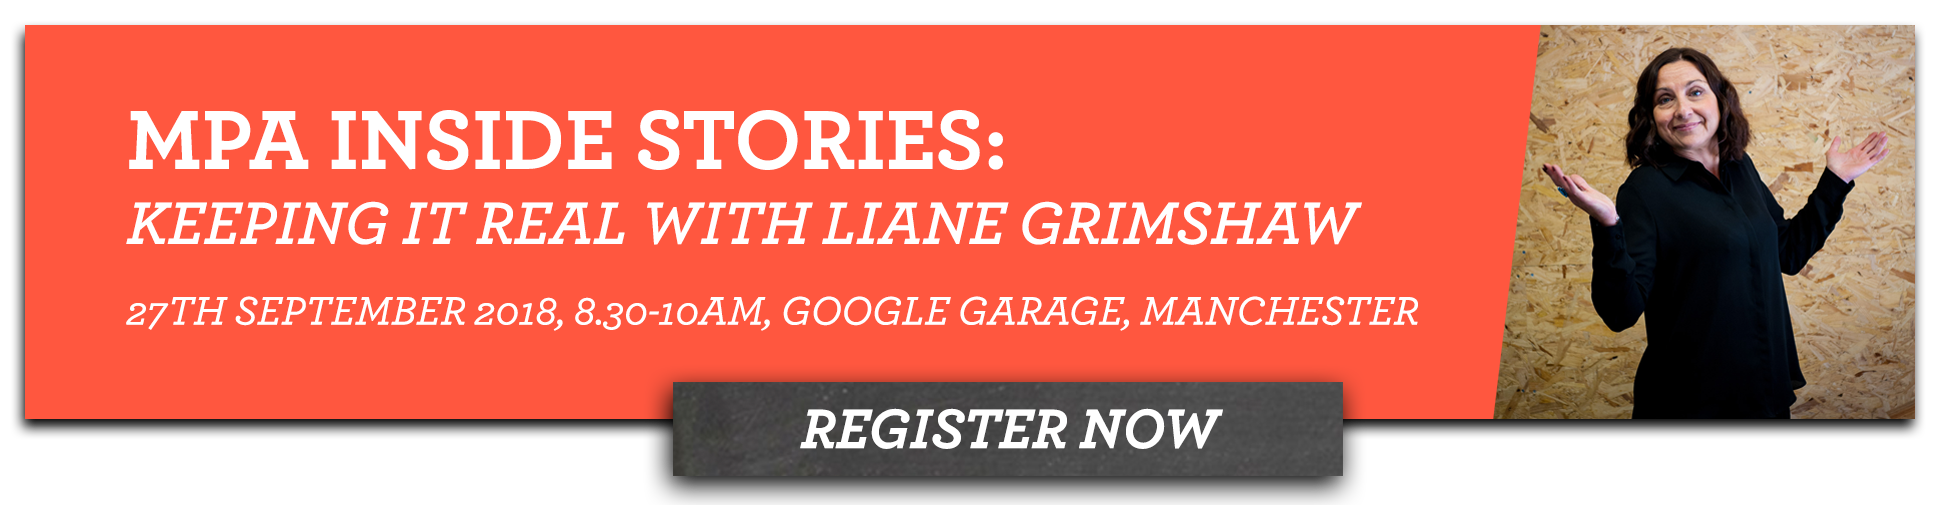 Keeping it real with Liane Grimshaw